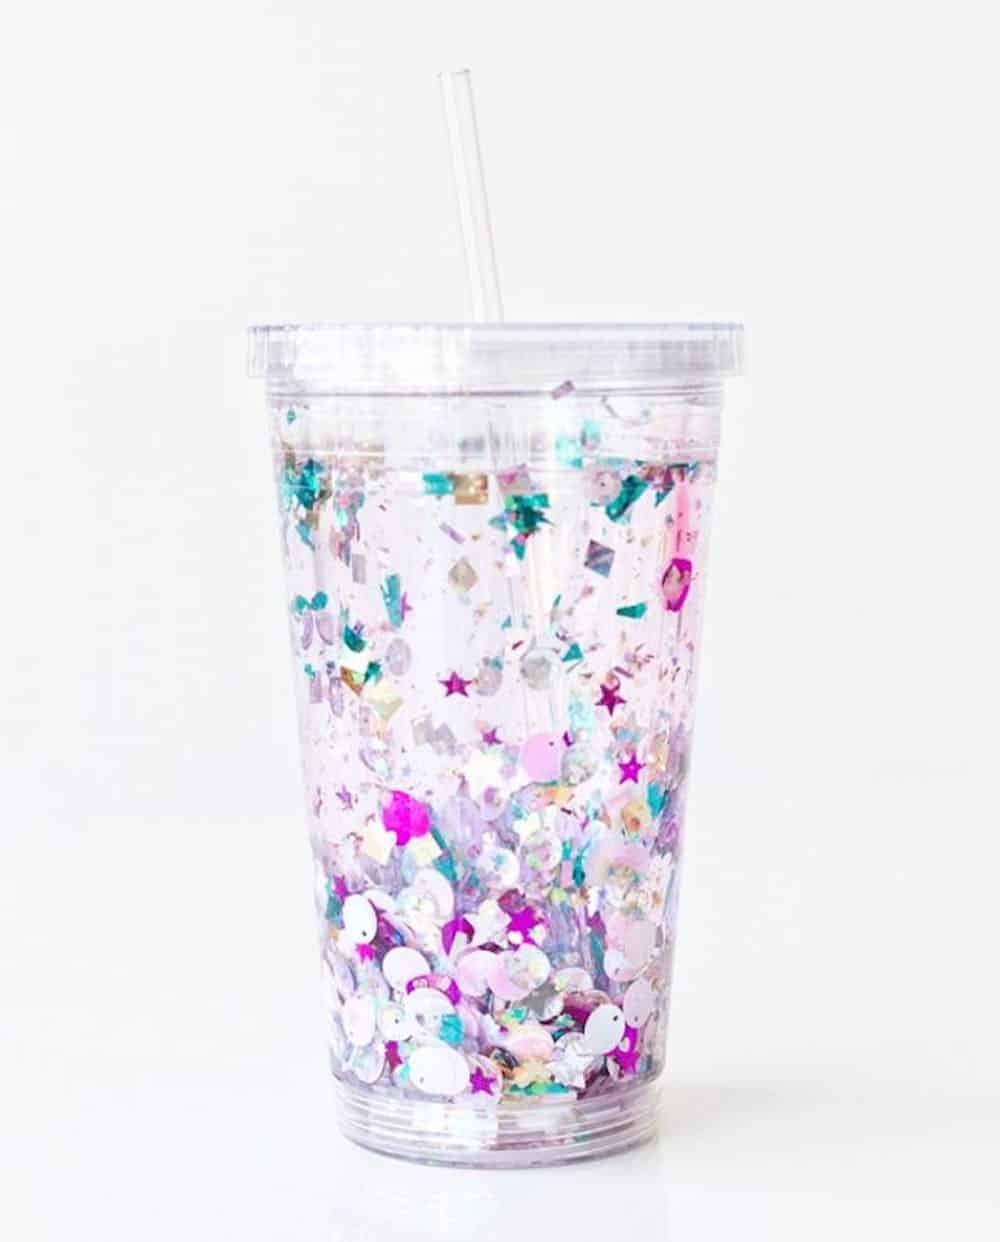 Diy floating glitter tumbler